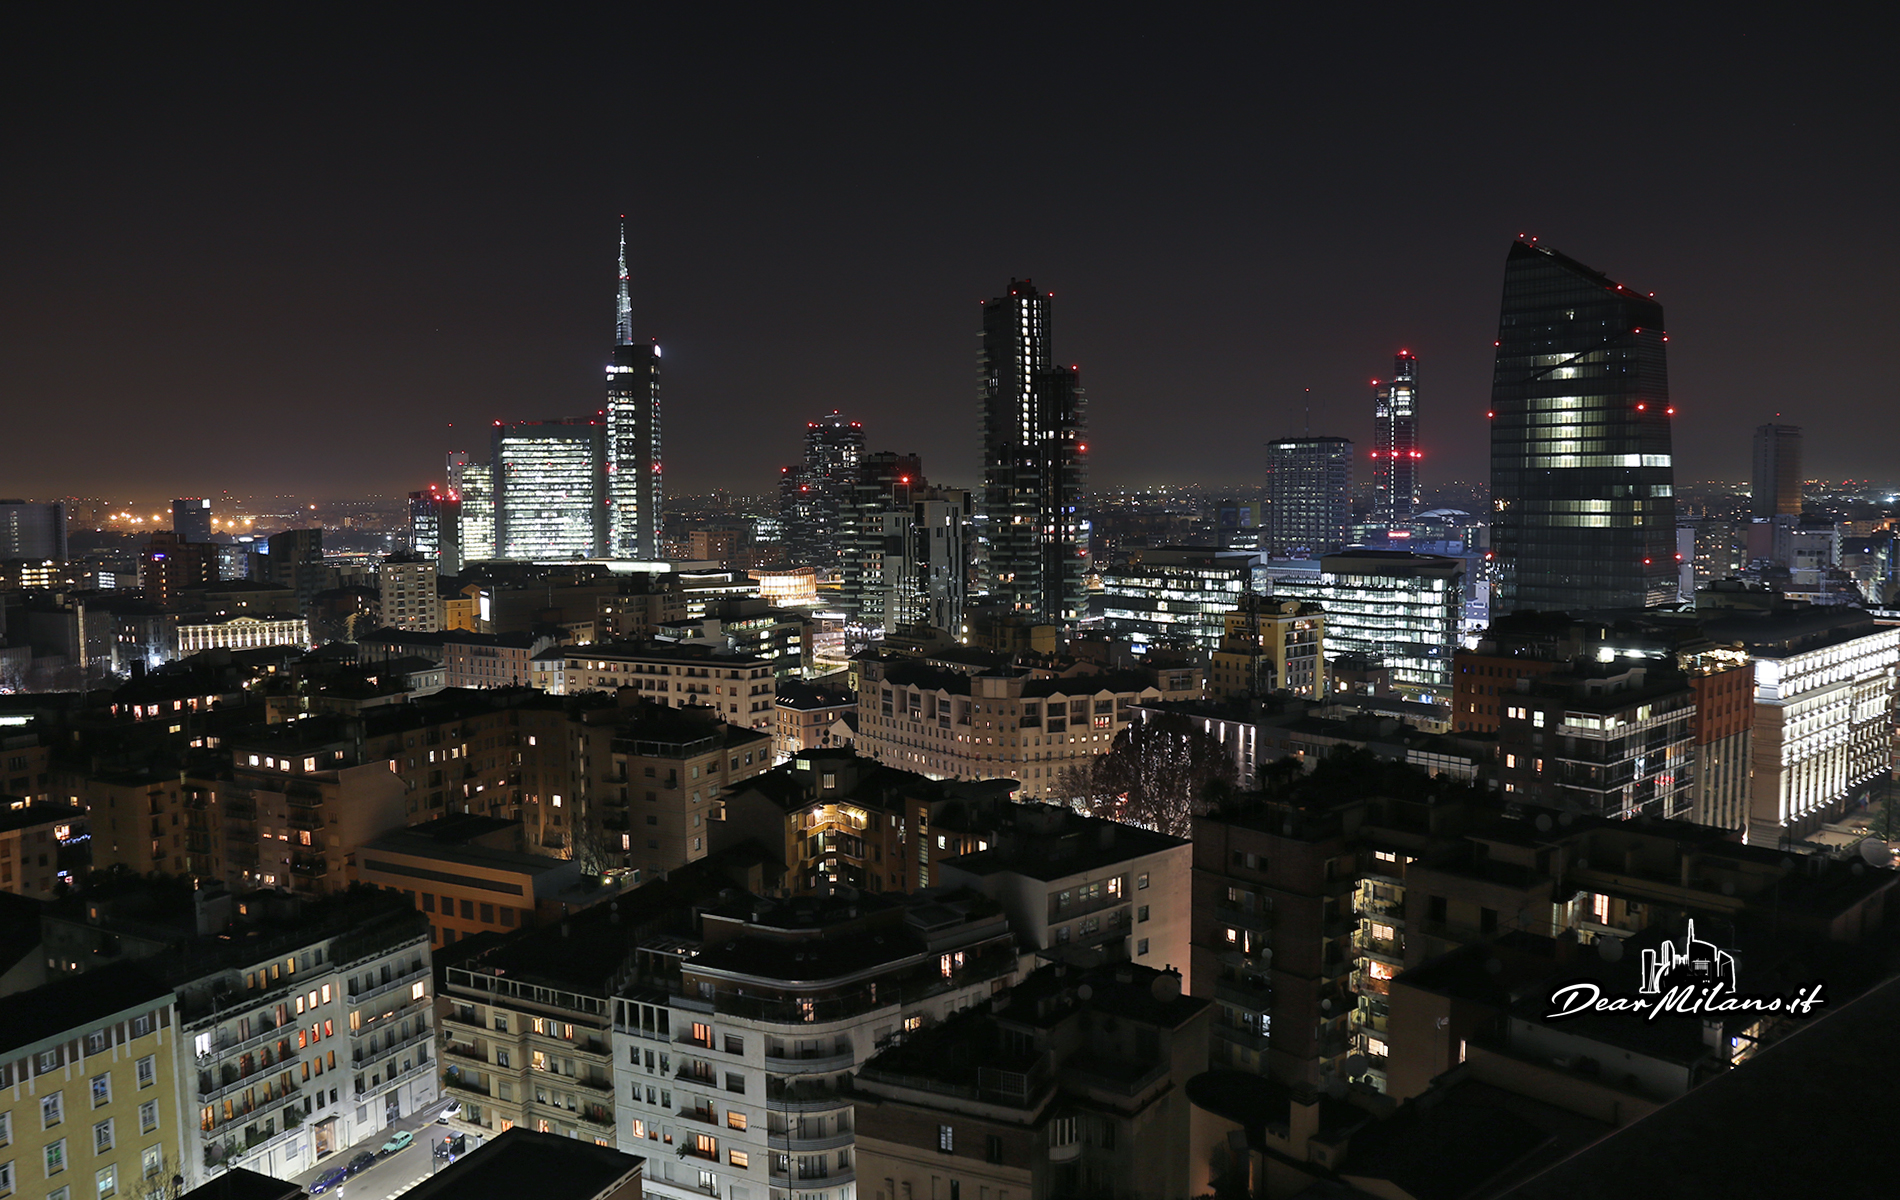 milano, skyline, porta nuova, sede bnp paribas, samsung district